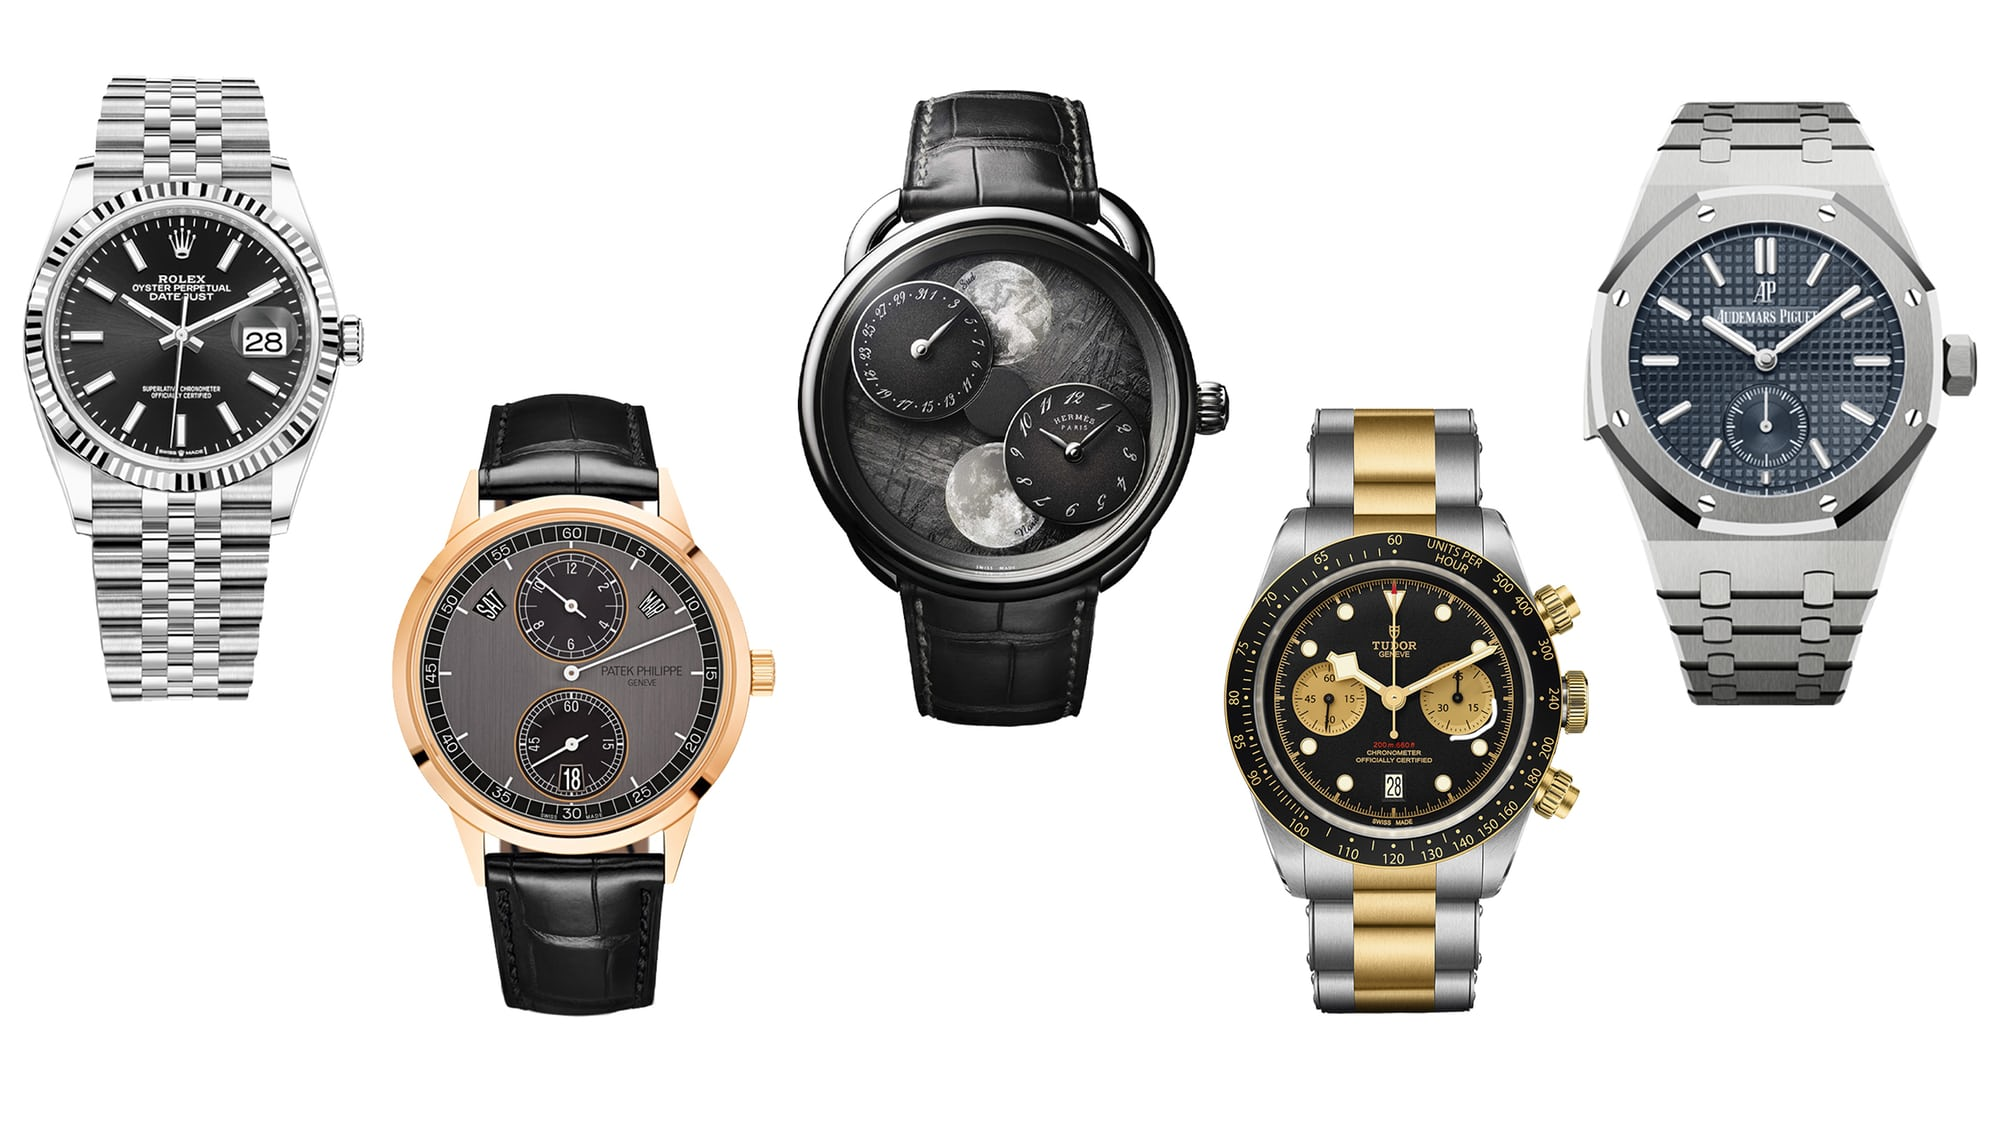 Editors' Picks: Five Great Watches From 2019 That You Probably Forgot About